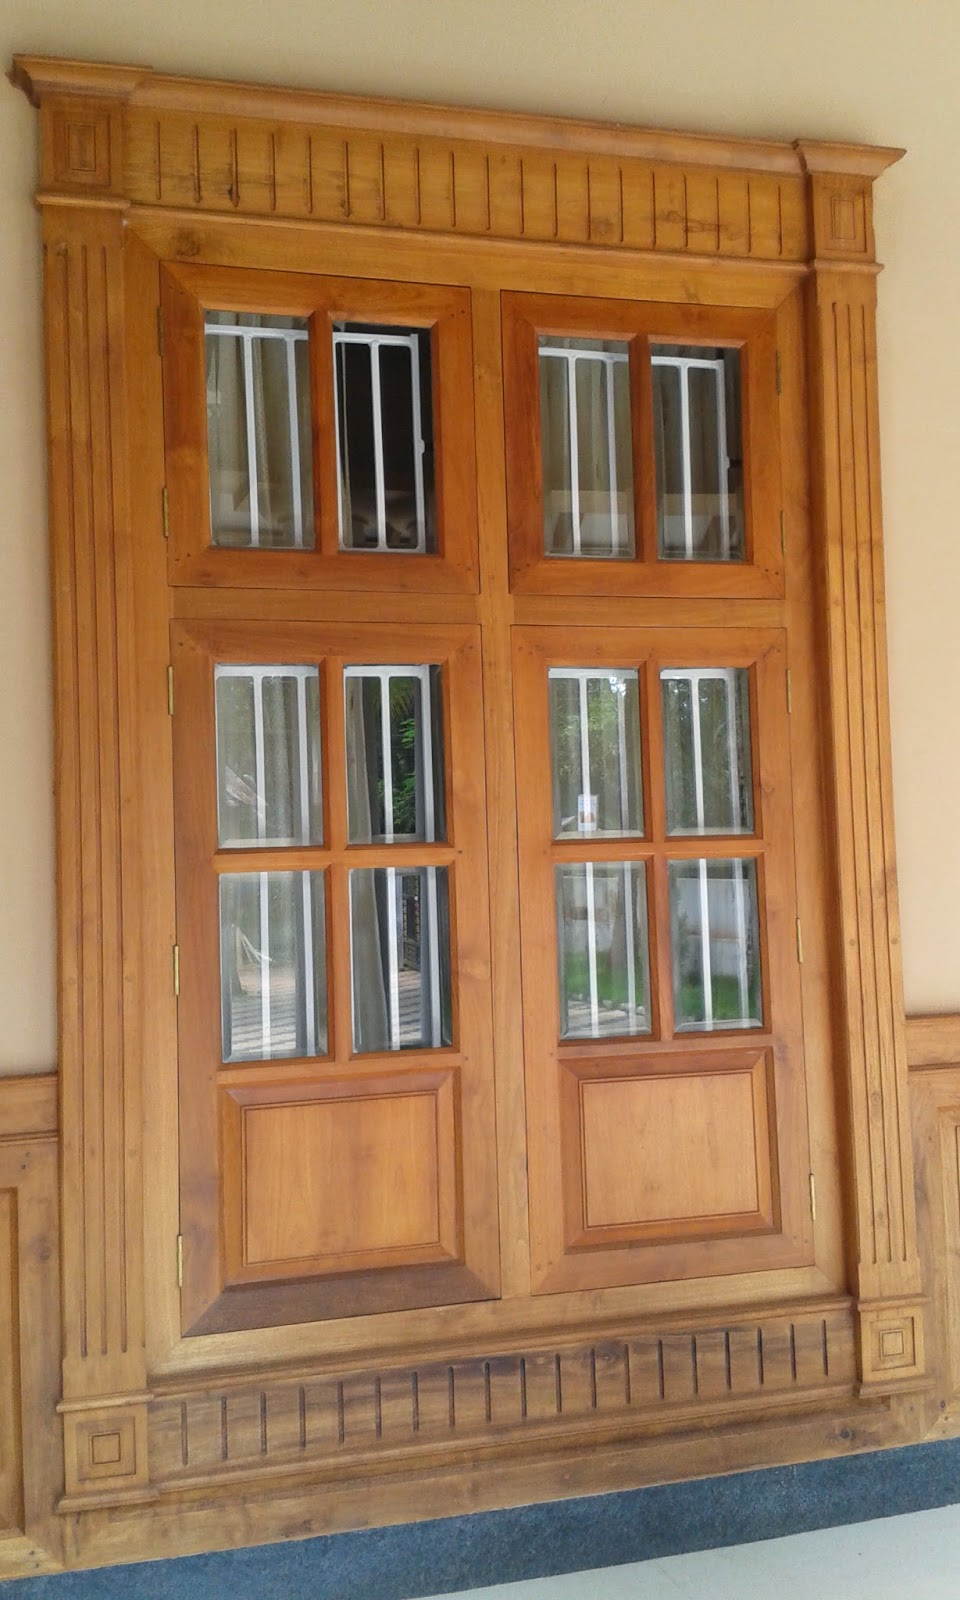 Kerala style carpenter works and designs main entrance for Window design for house in india